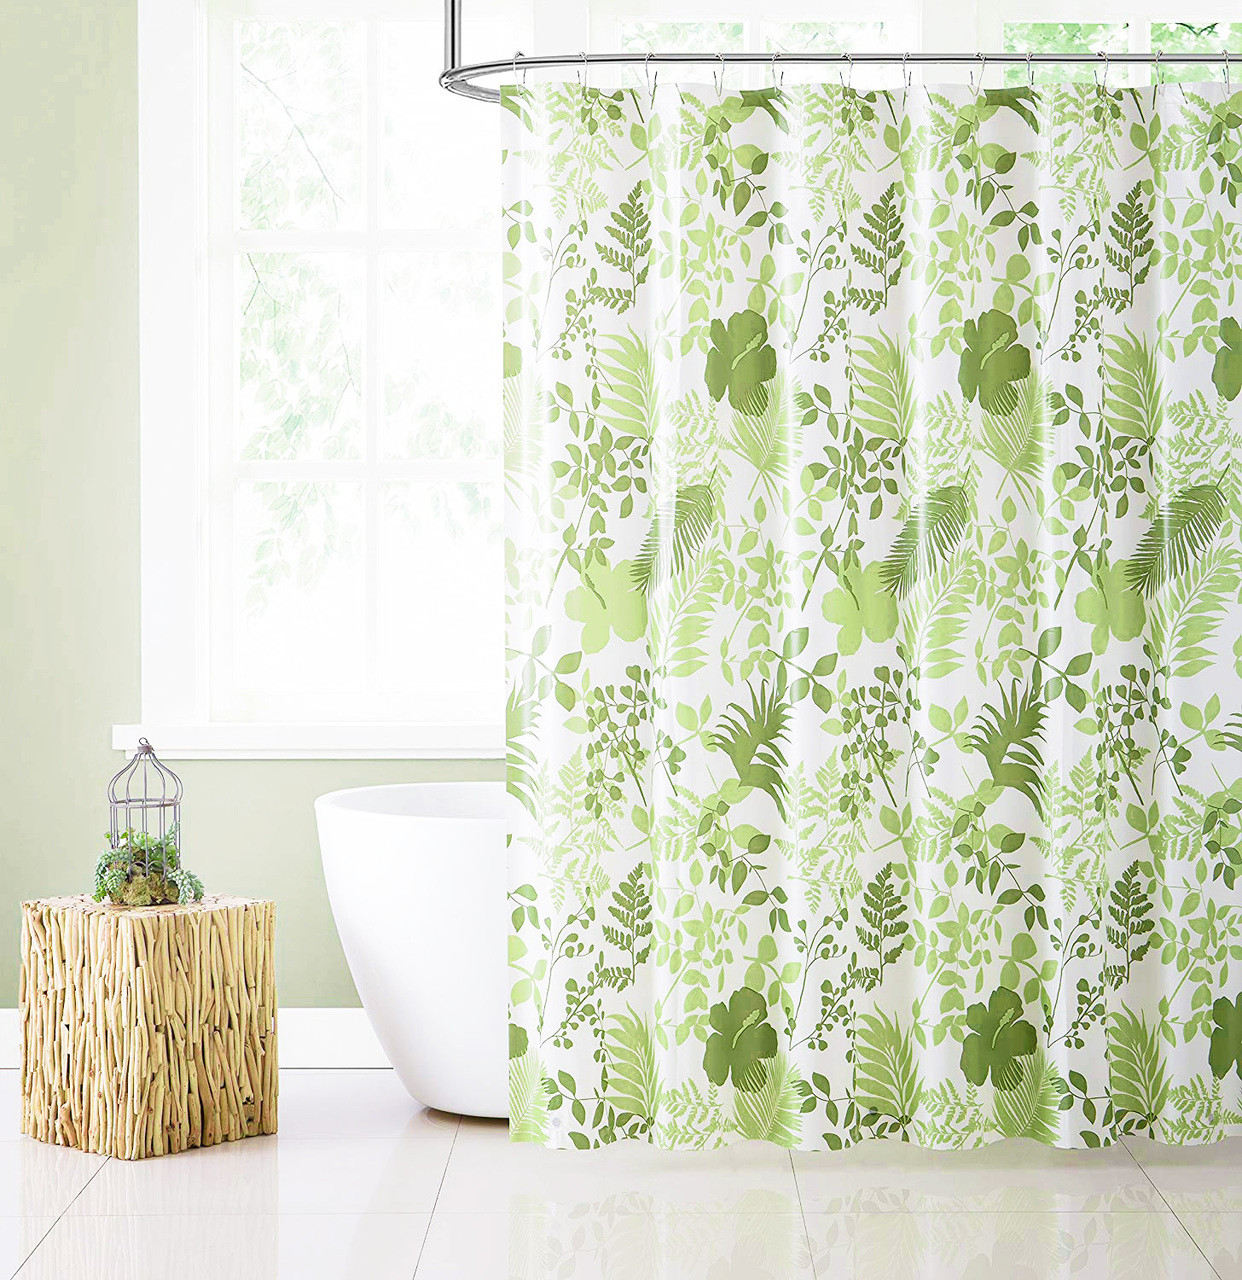 Green Peva Shower Curtain Liner Odorless Pvc And Chlorine Free